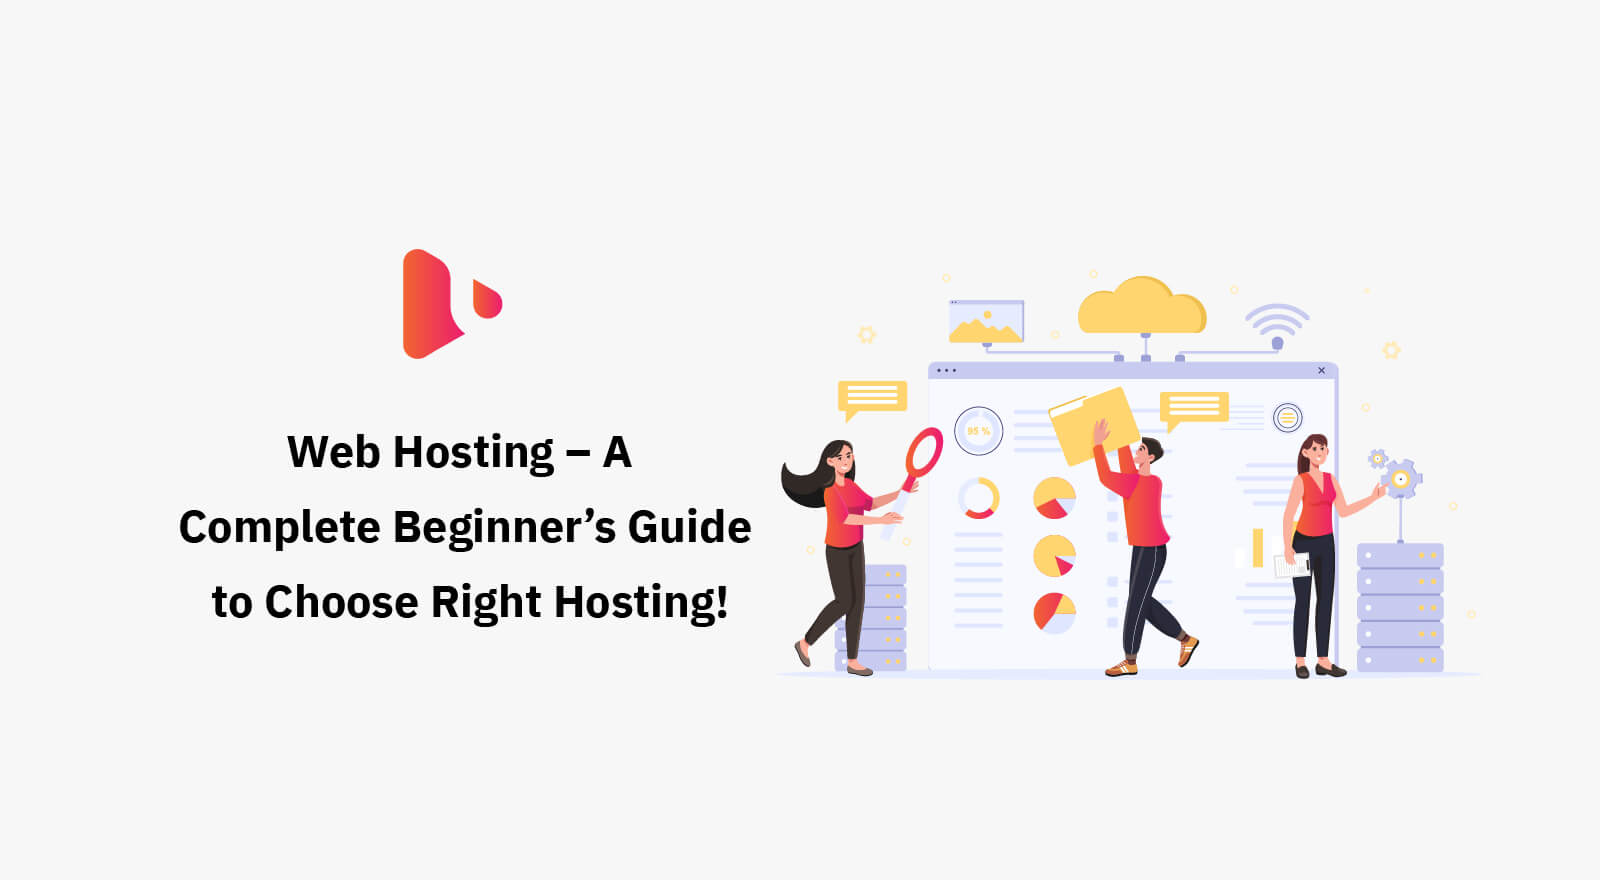 Web Hosting – A Complete Beginner's Guide to Choose Right Hosting!